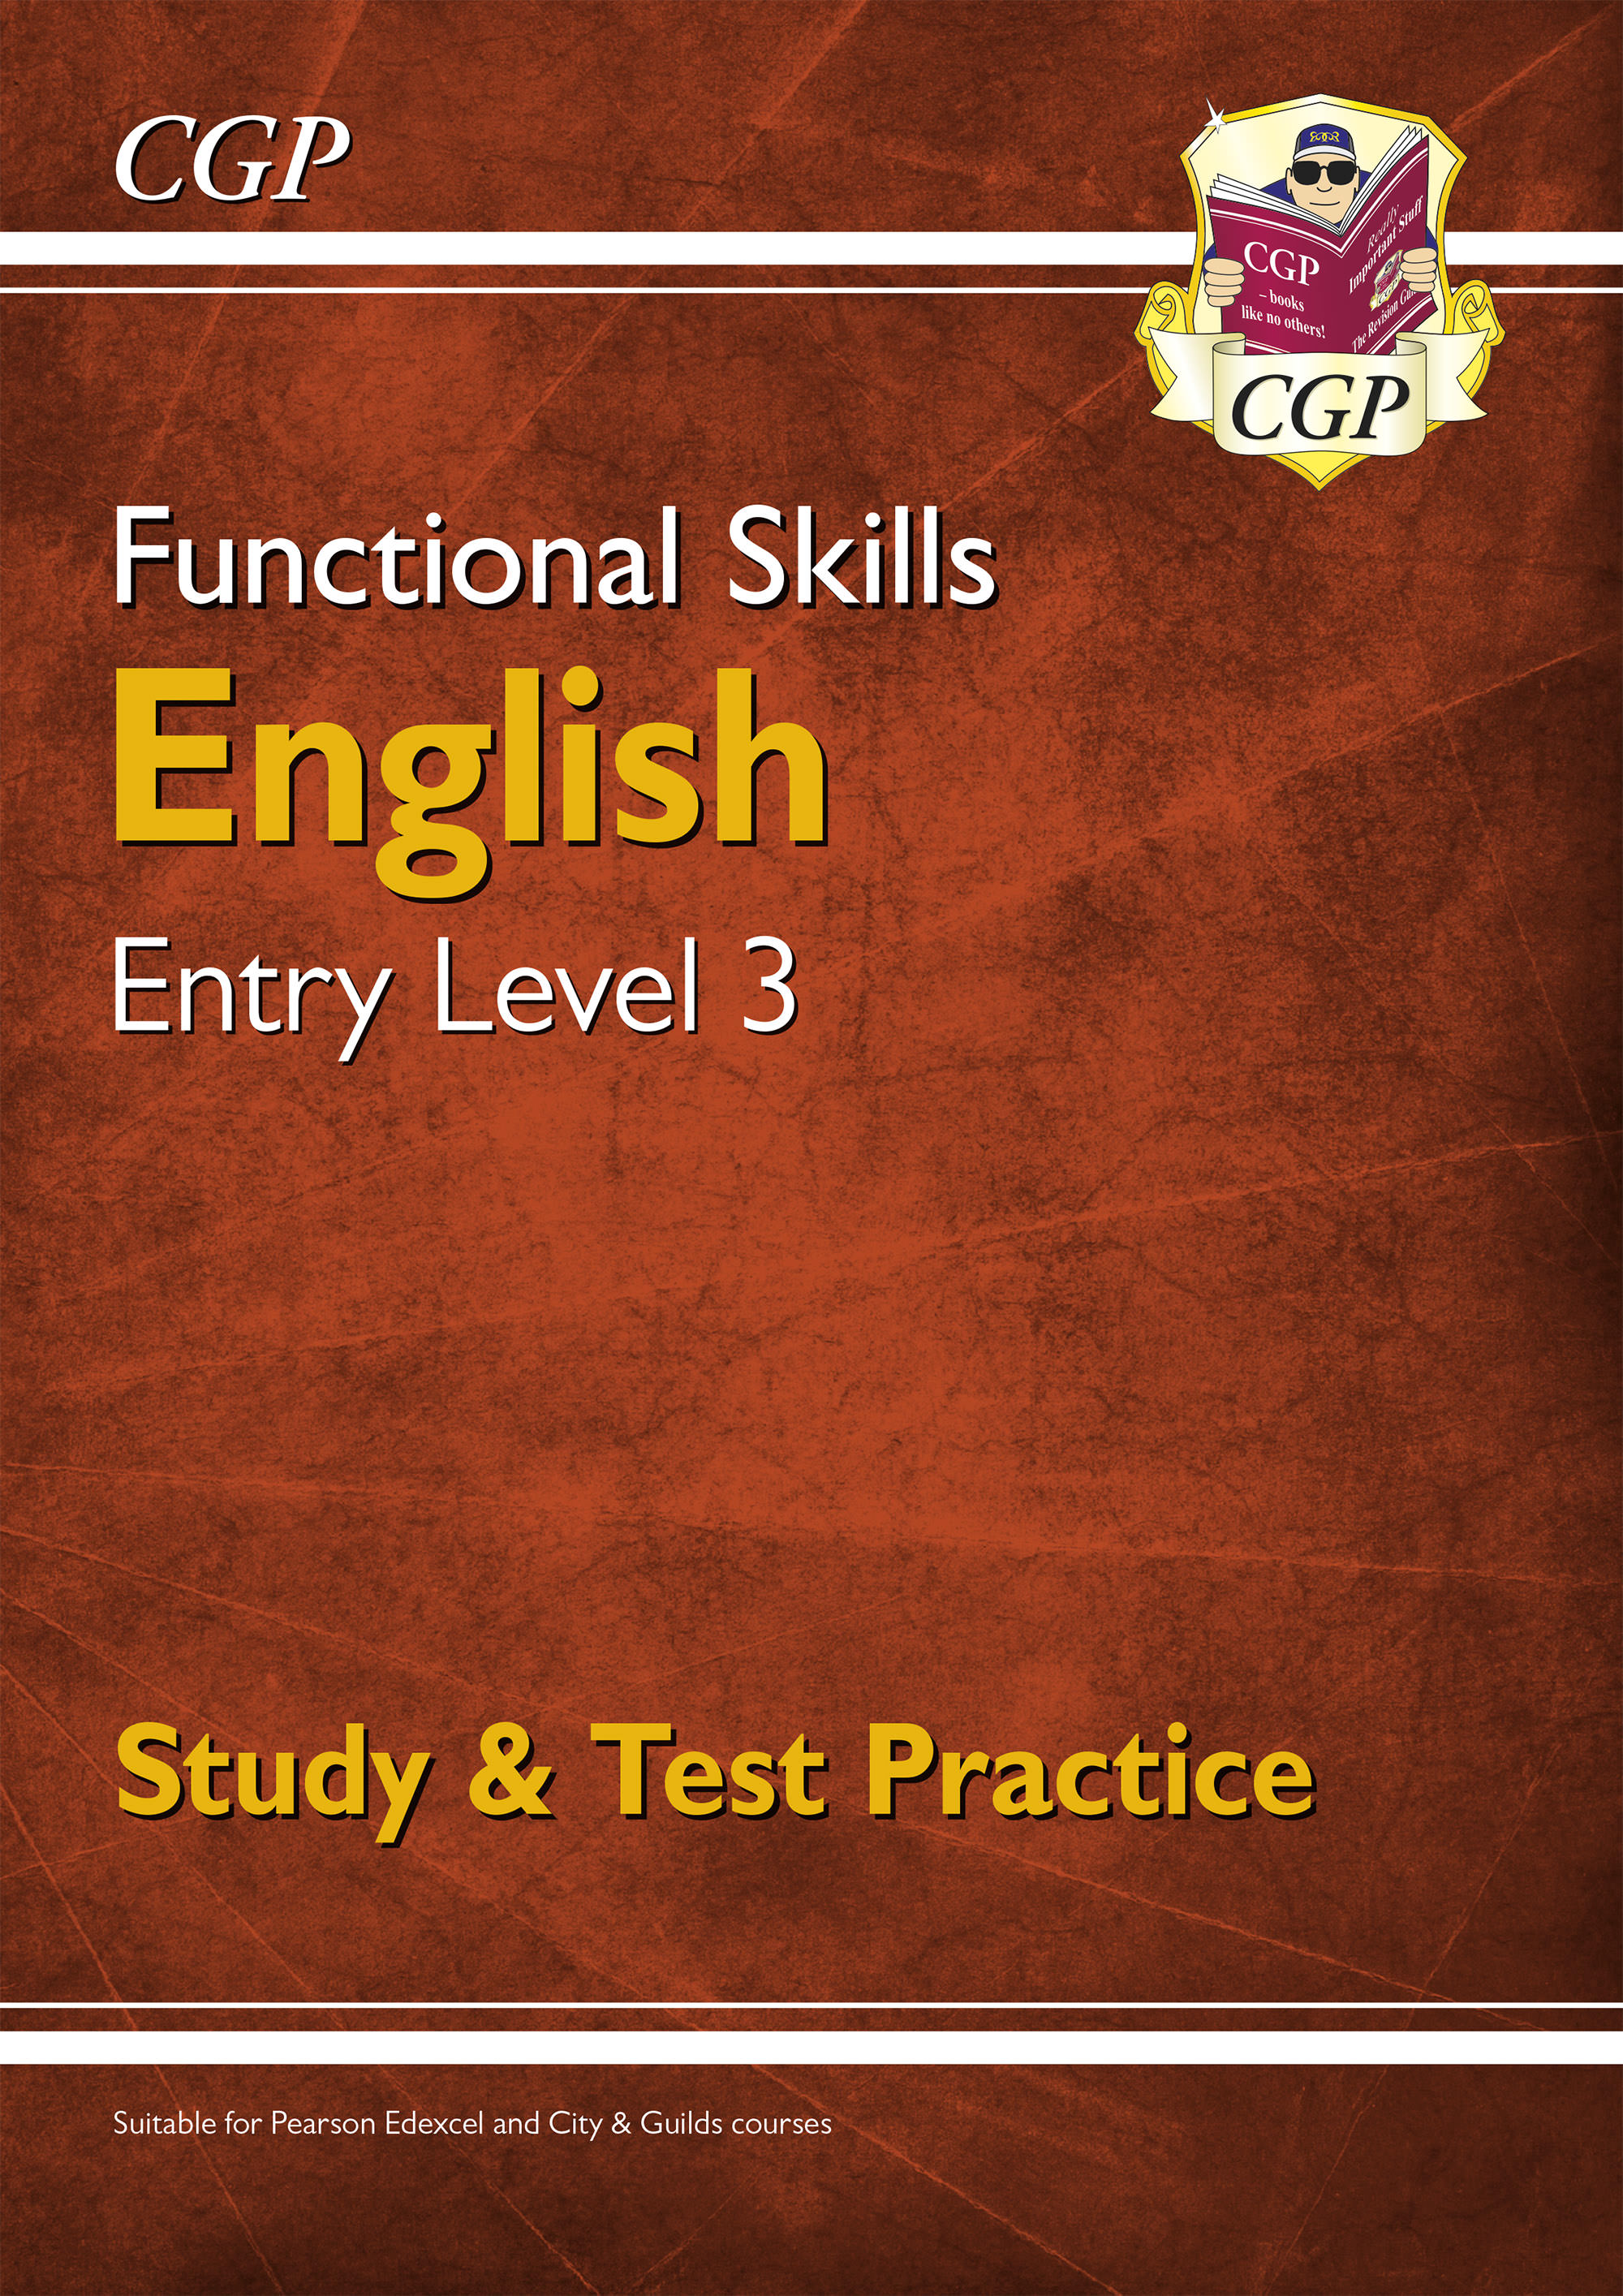 E3SRA3DK - New Functional Skills English Entry Level 3 - Study & Test Practice (for 2019 & beyond)